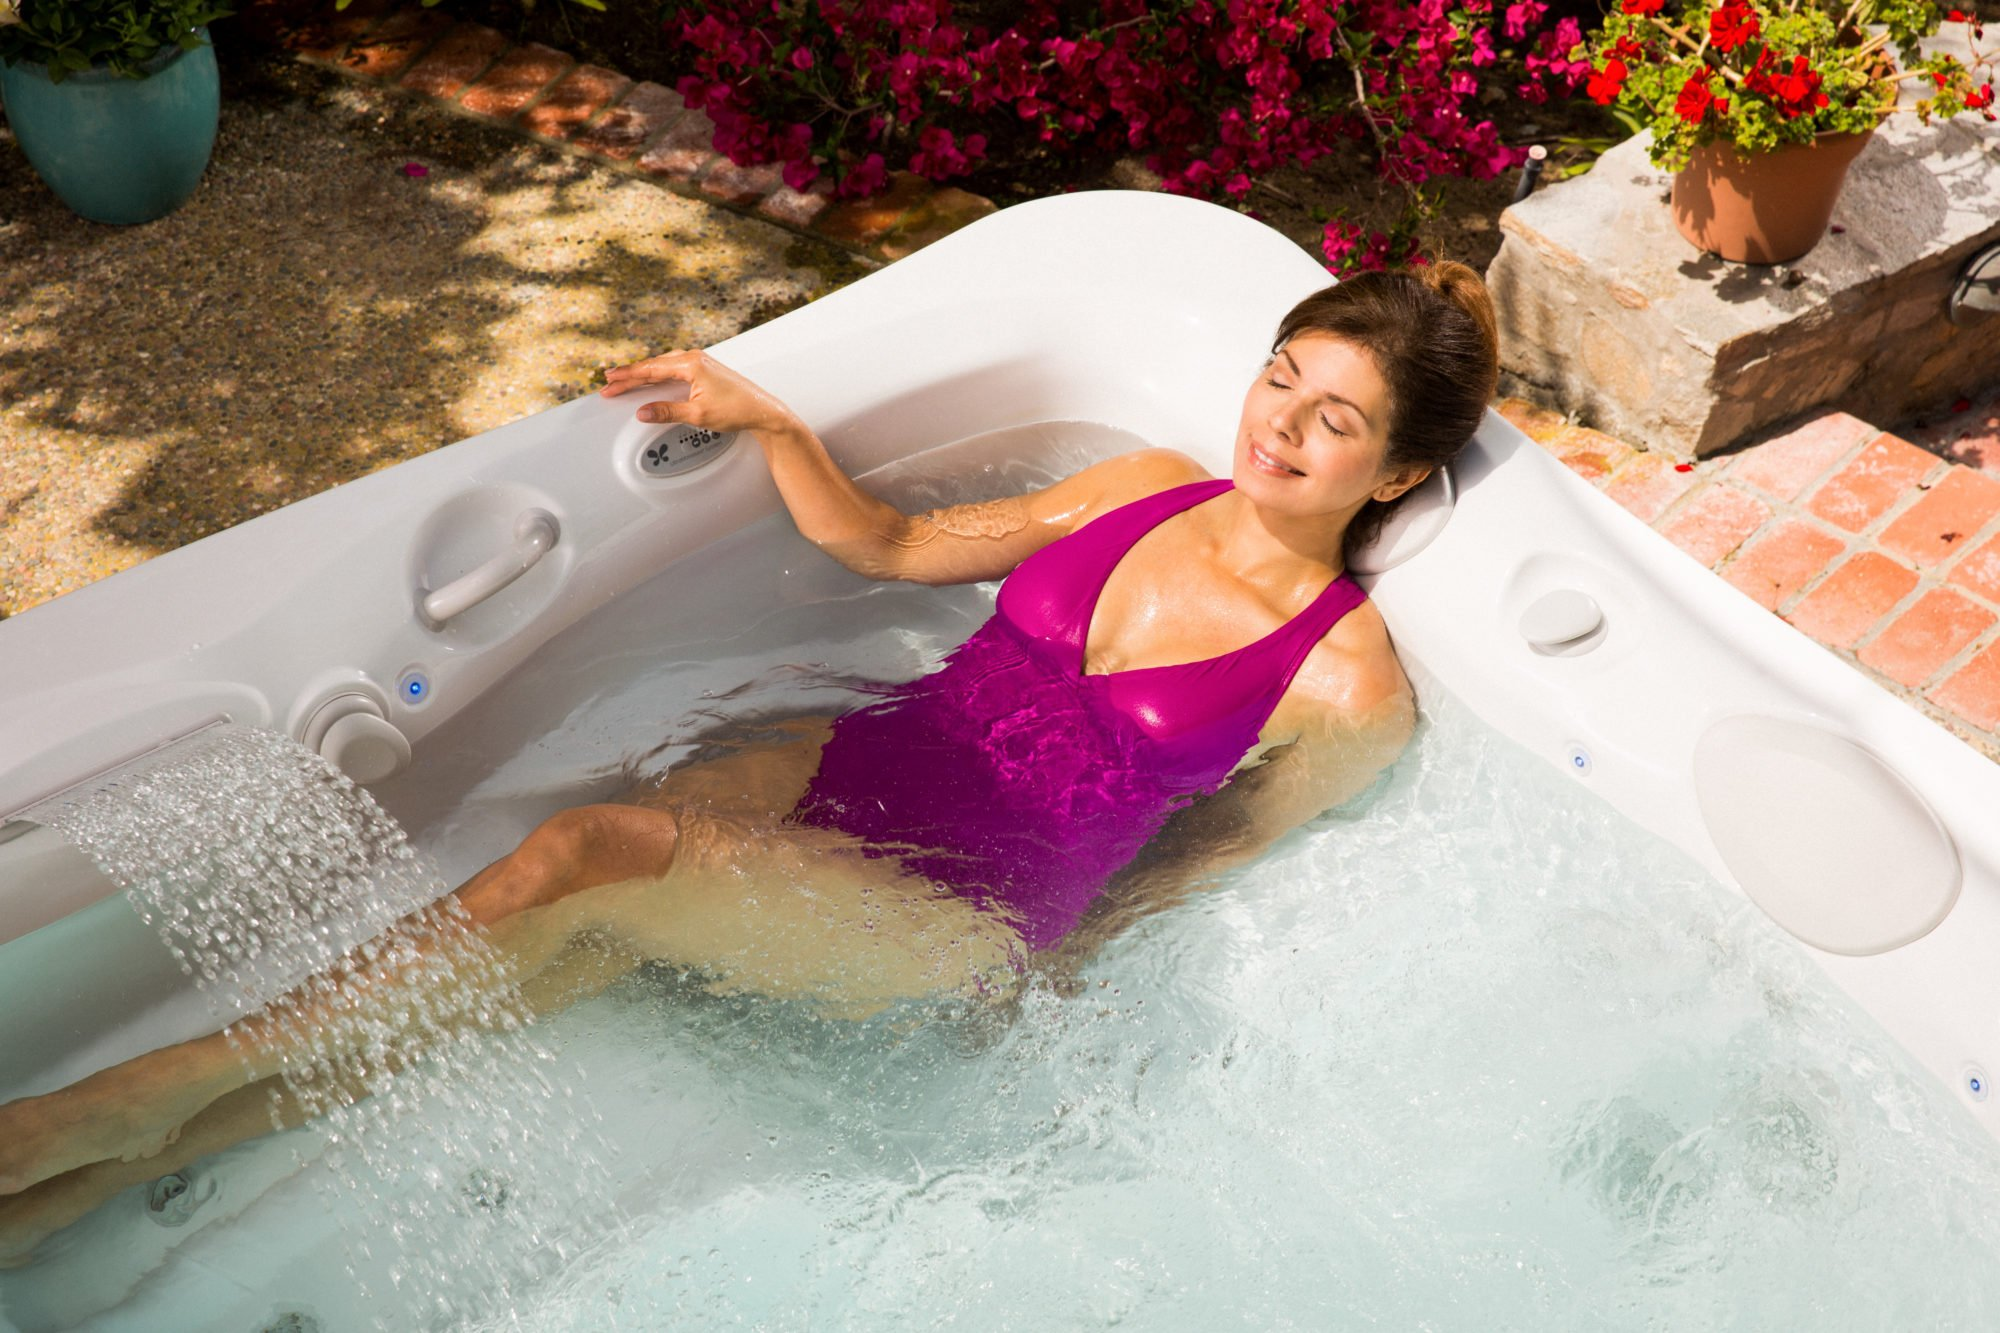 With the right summer hot tub setting you can cool off on warm days.